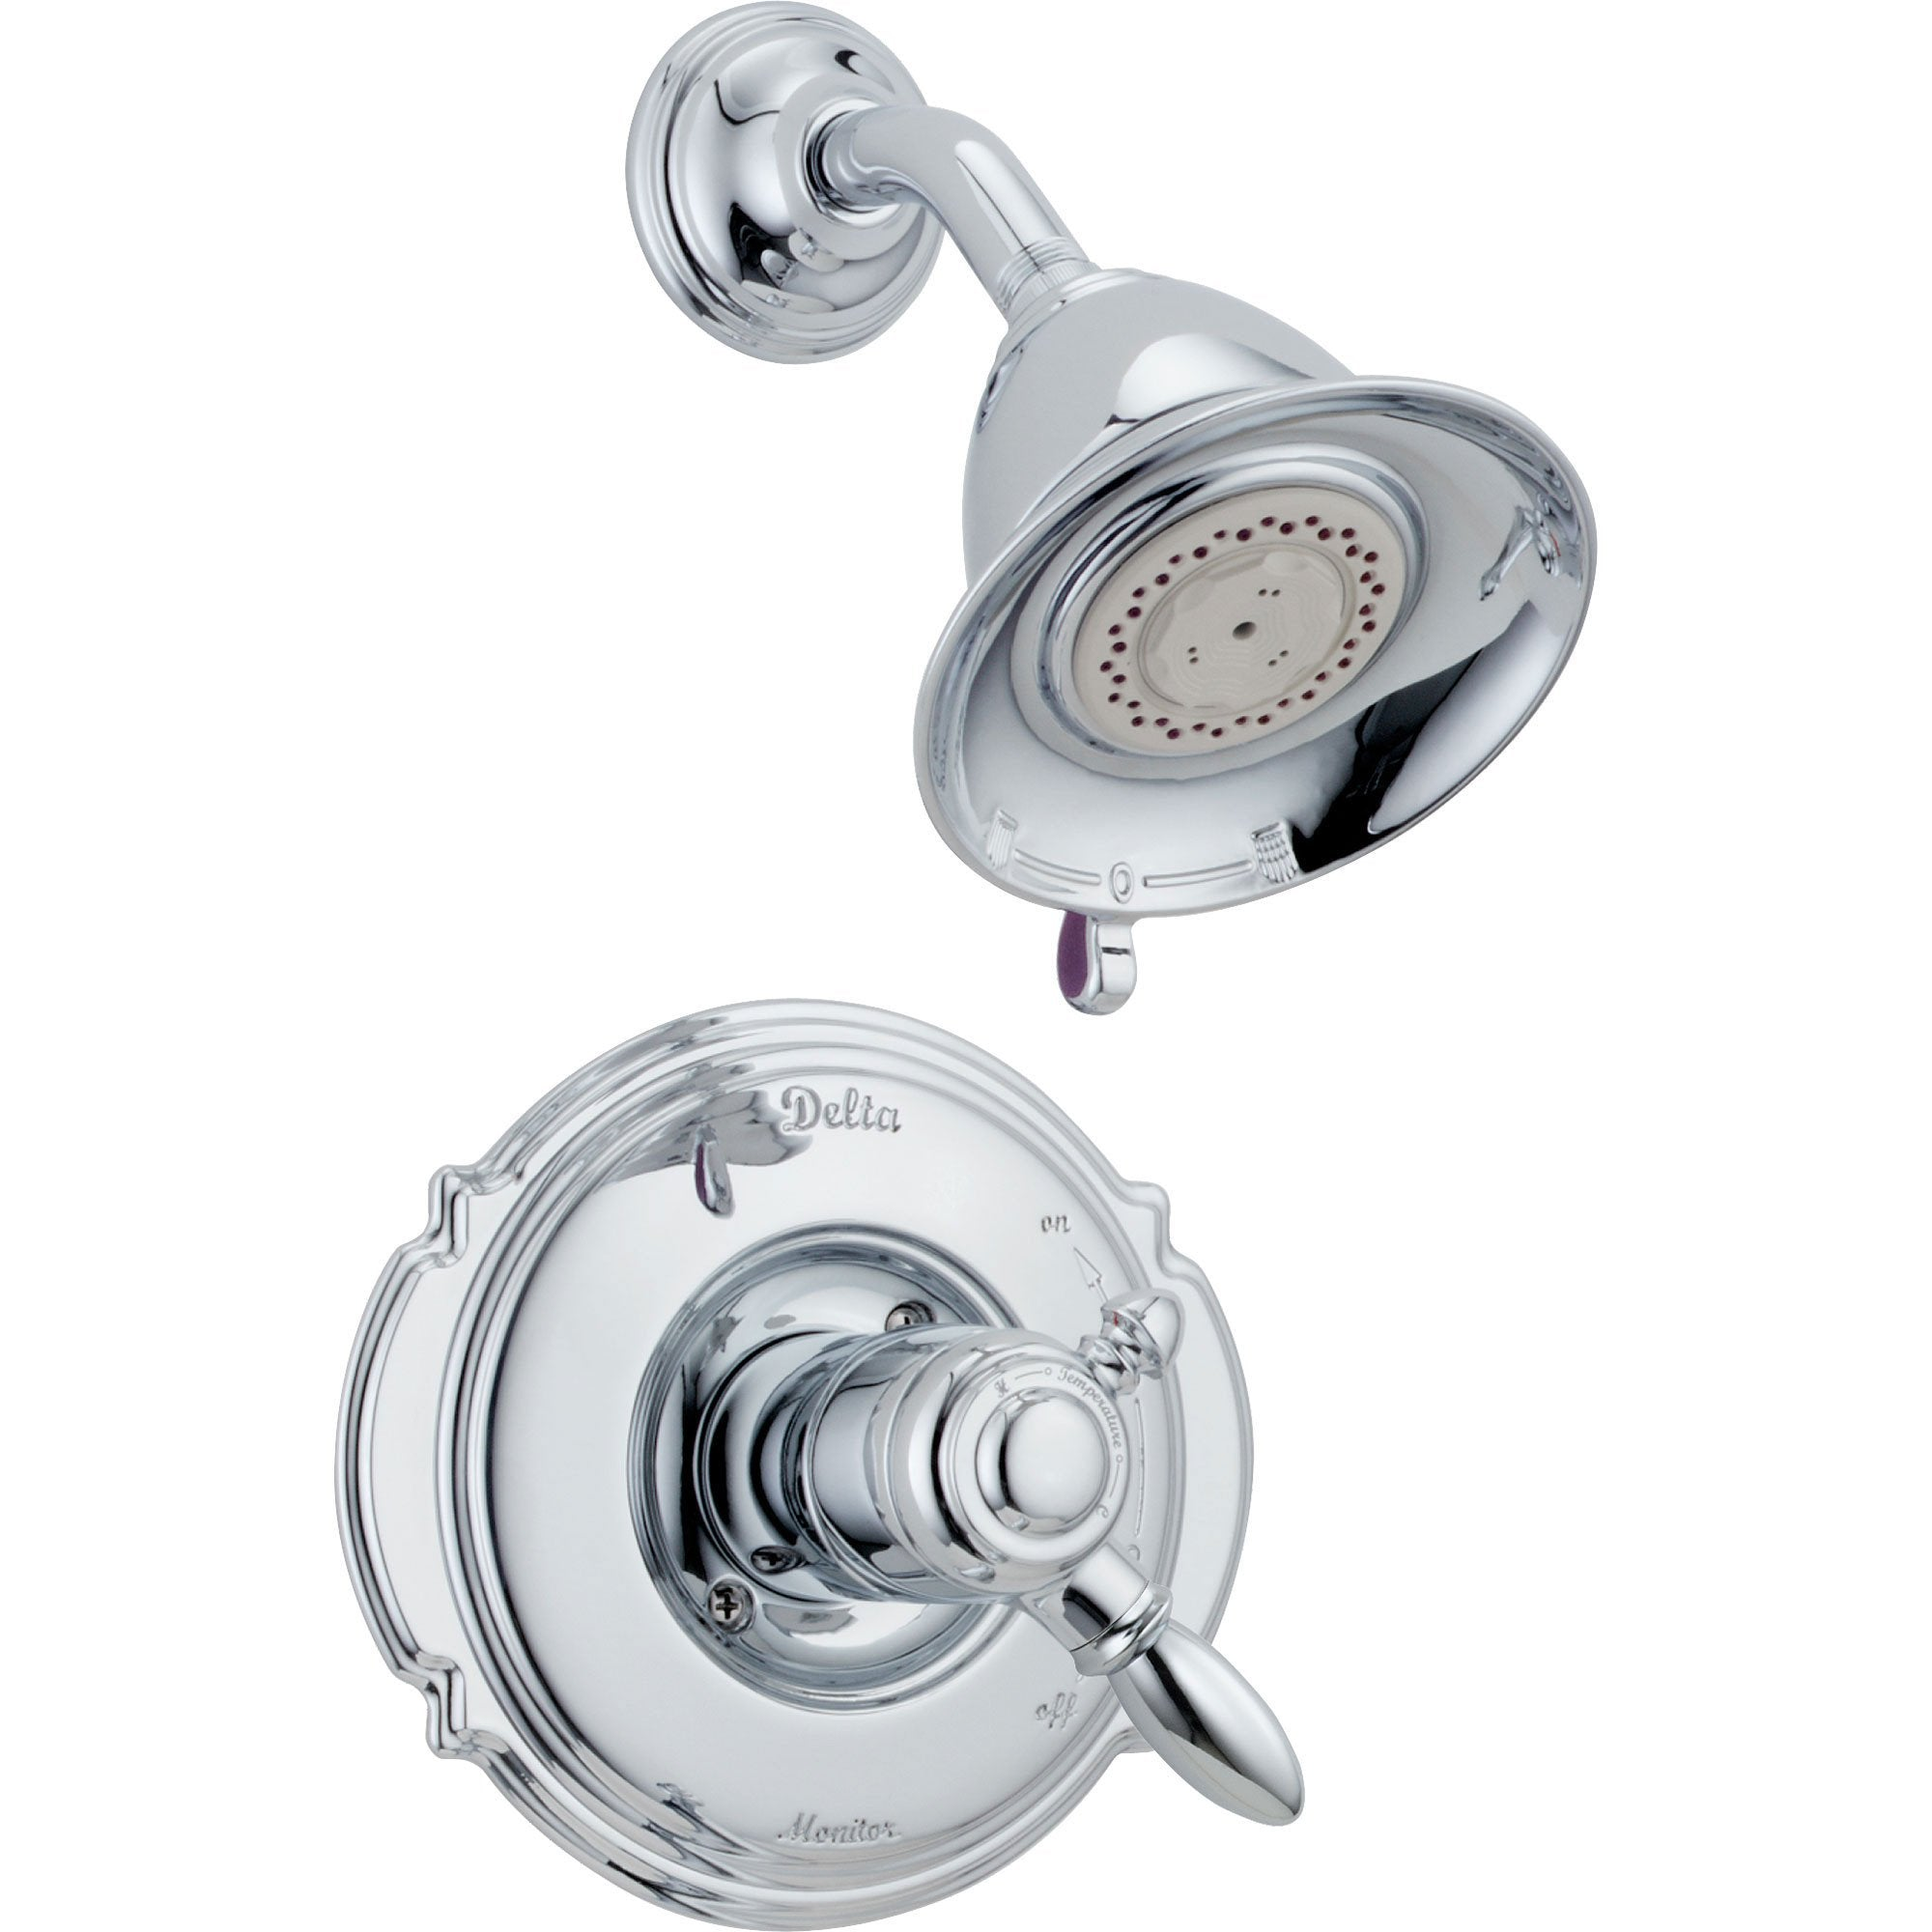 Delta Victorian Dual Control Temp/Volume Chrome Shower Faucet with Valve D694V